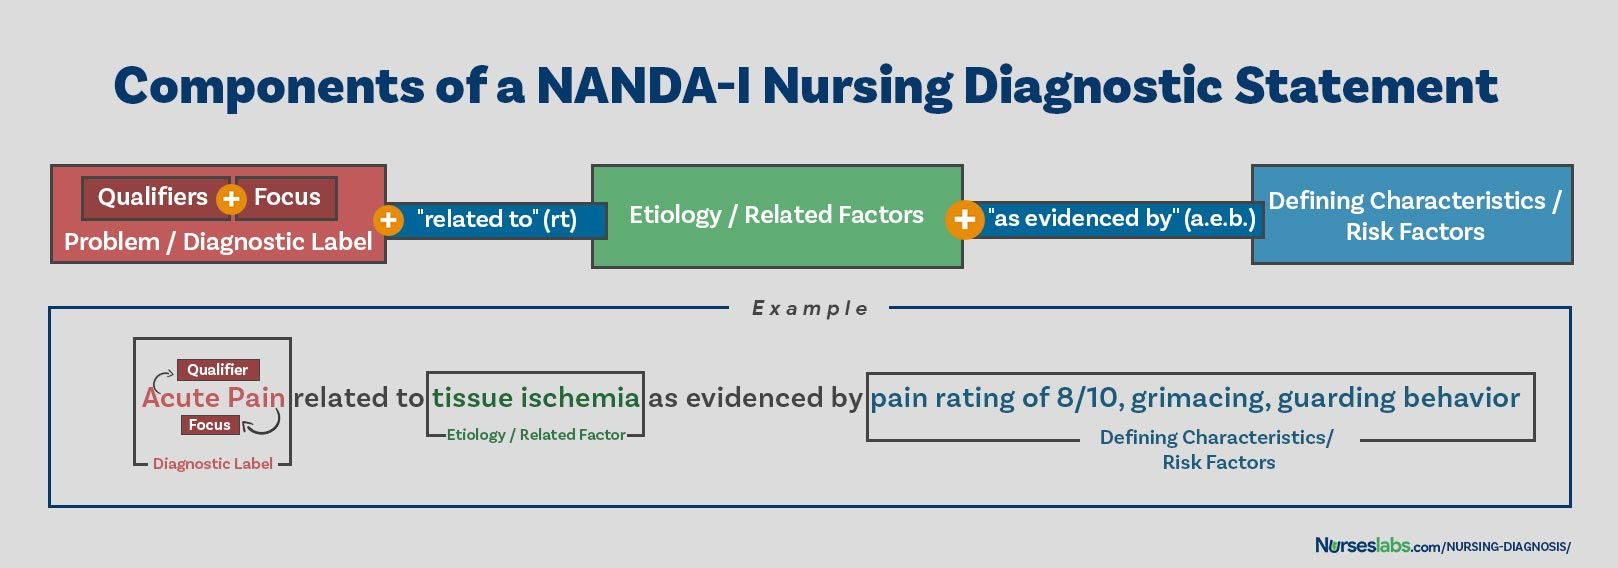 Components of a Nursing Diagnosis Statement: problem, etiology, and defining characteristics.